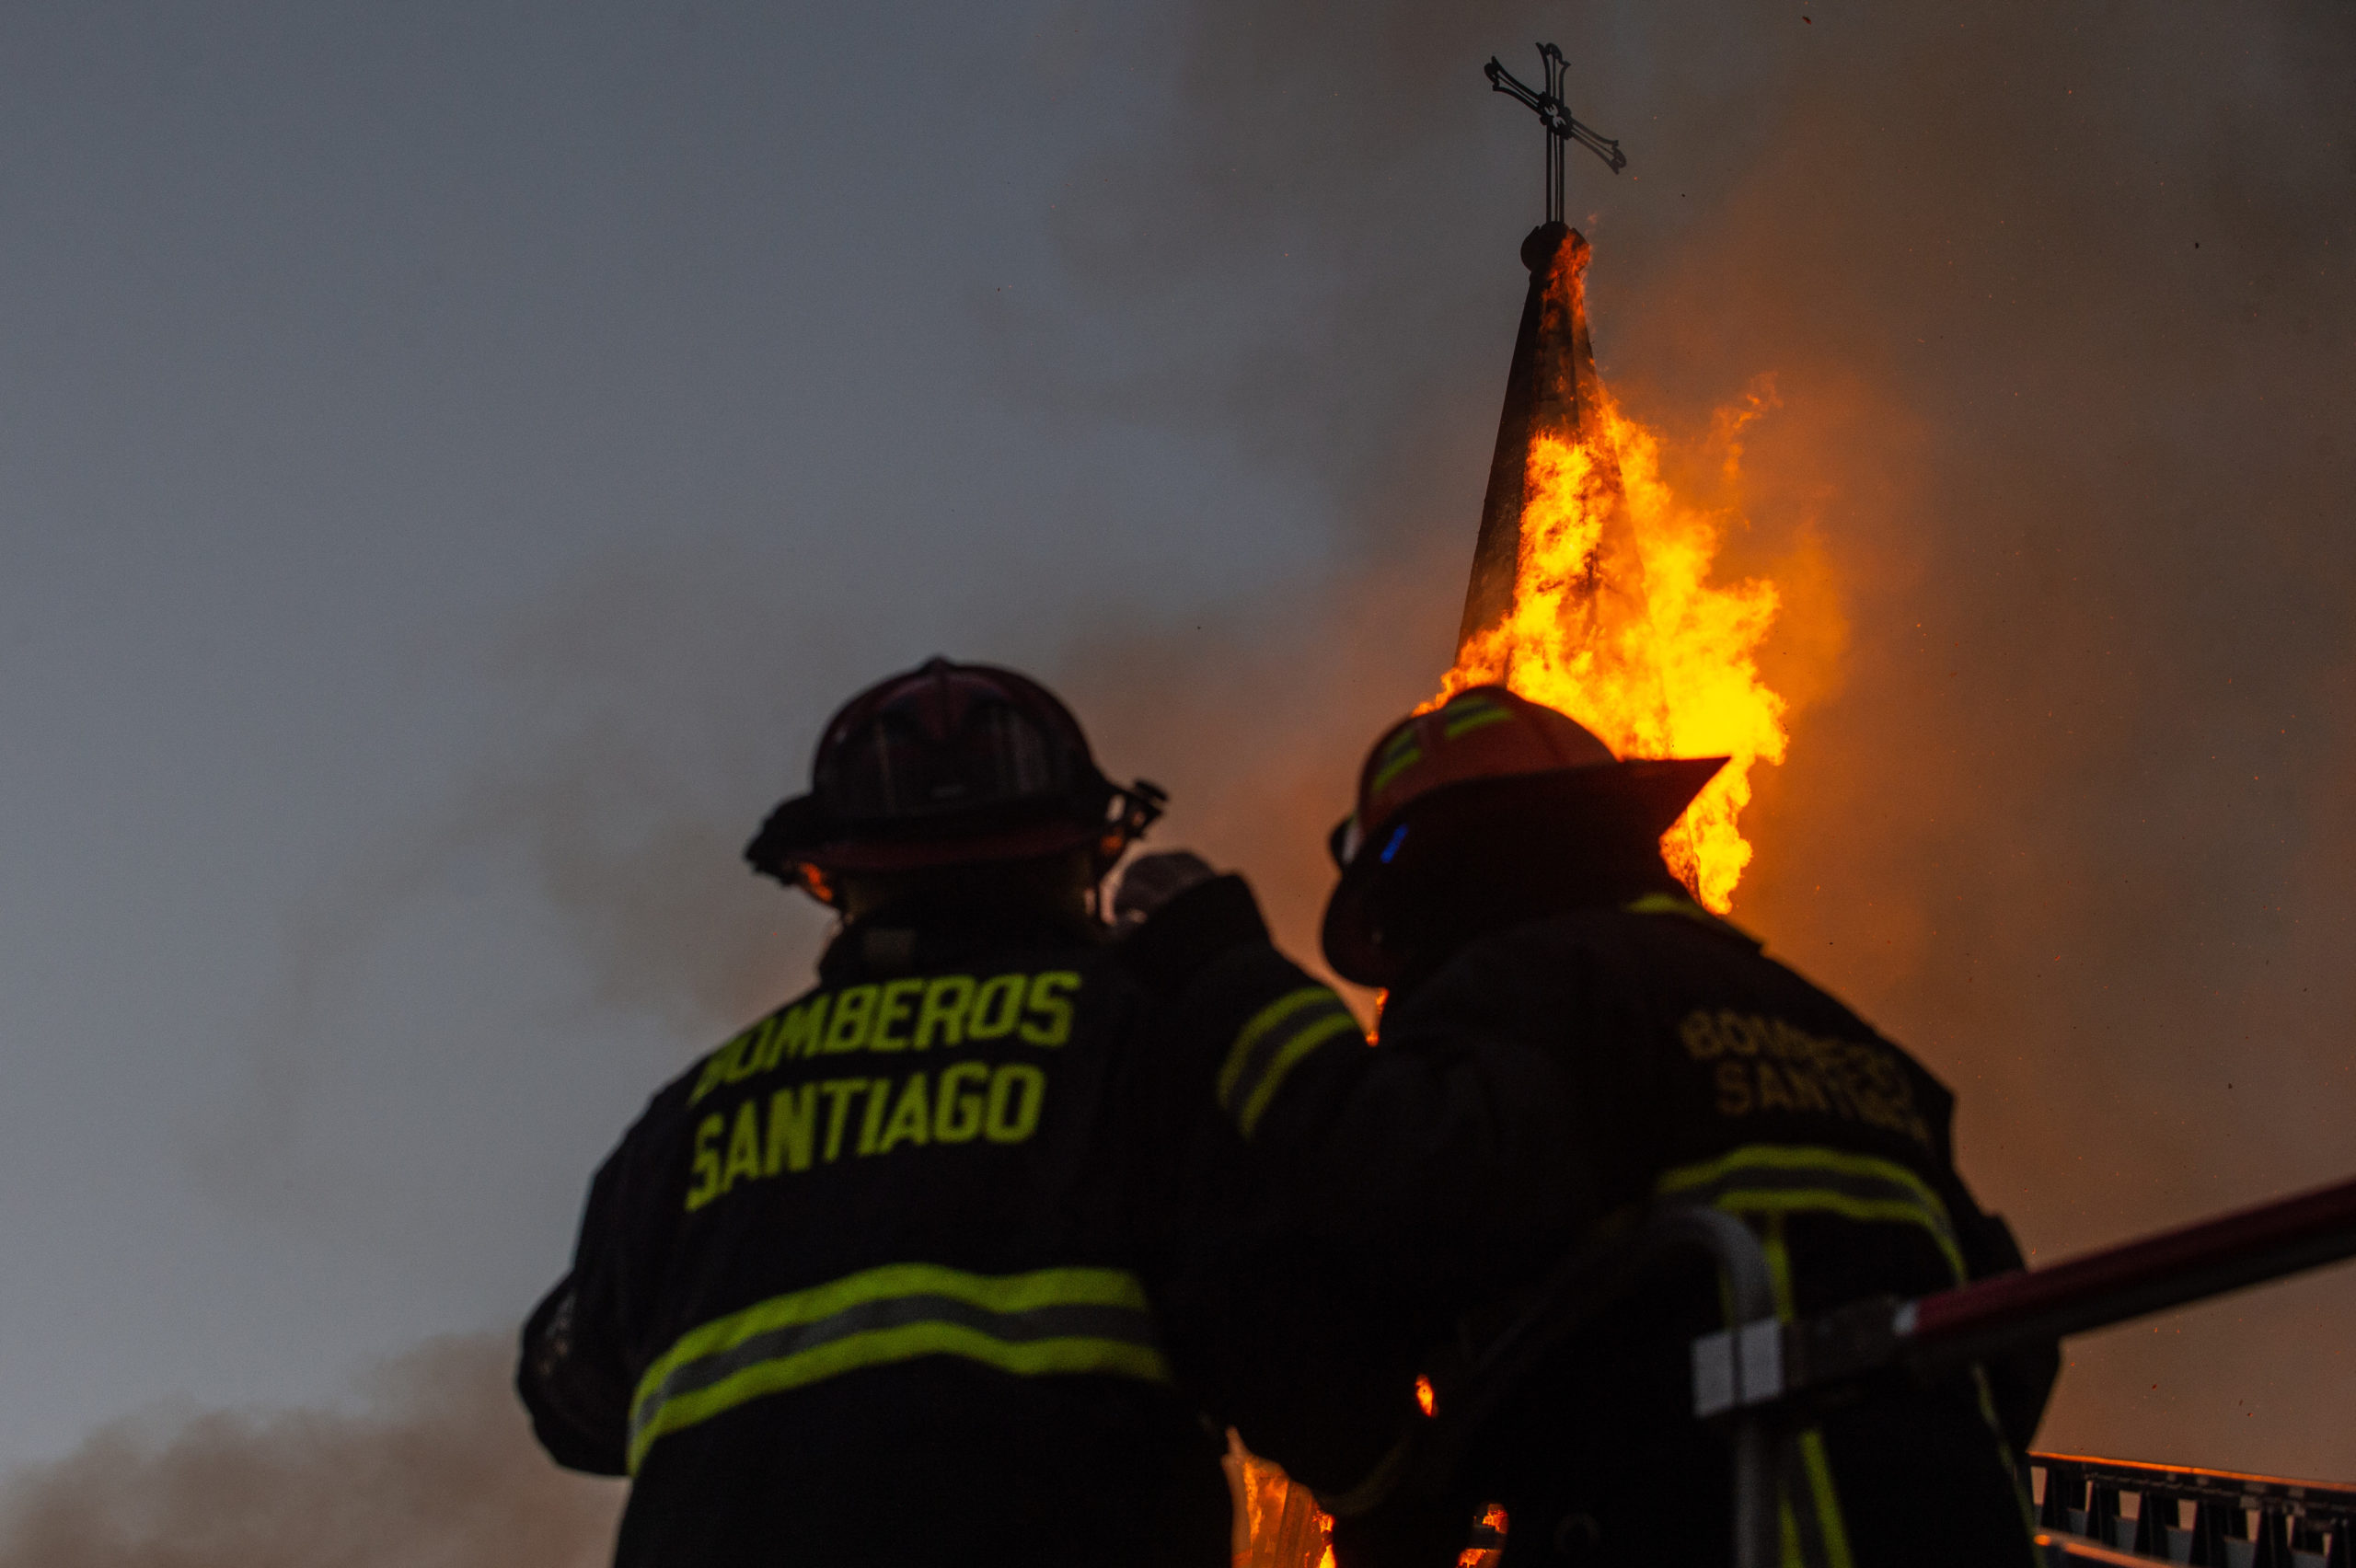 Firemen attempt to put out a church which has caught fire during a protest on October 18, 2020 in Santiago, Chile. A series of protests and social unrest arose on October 18, 2019, after a subway fare increase. It developed in a movement demanding improvements in basic services, fair prices and benefits including pensions, public health, and education. As a result, Chile will hold a referendum next Sunday to to decide whether or not to modify the Pinochet-era constitution. (Claudio Santana/Getty Images)